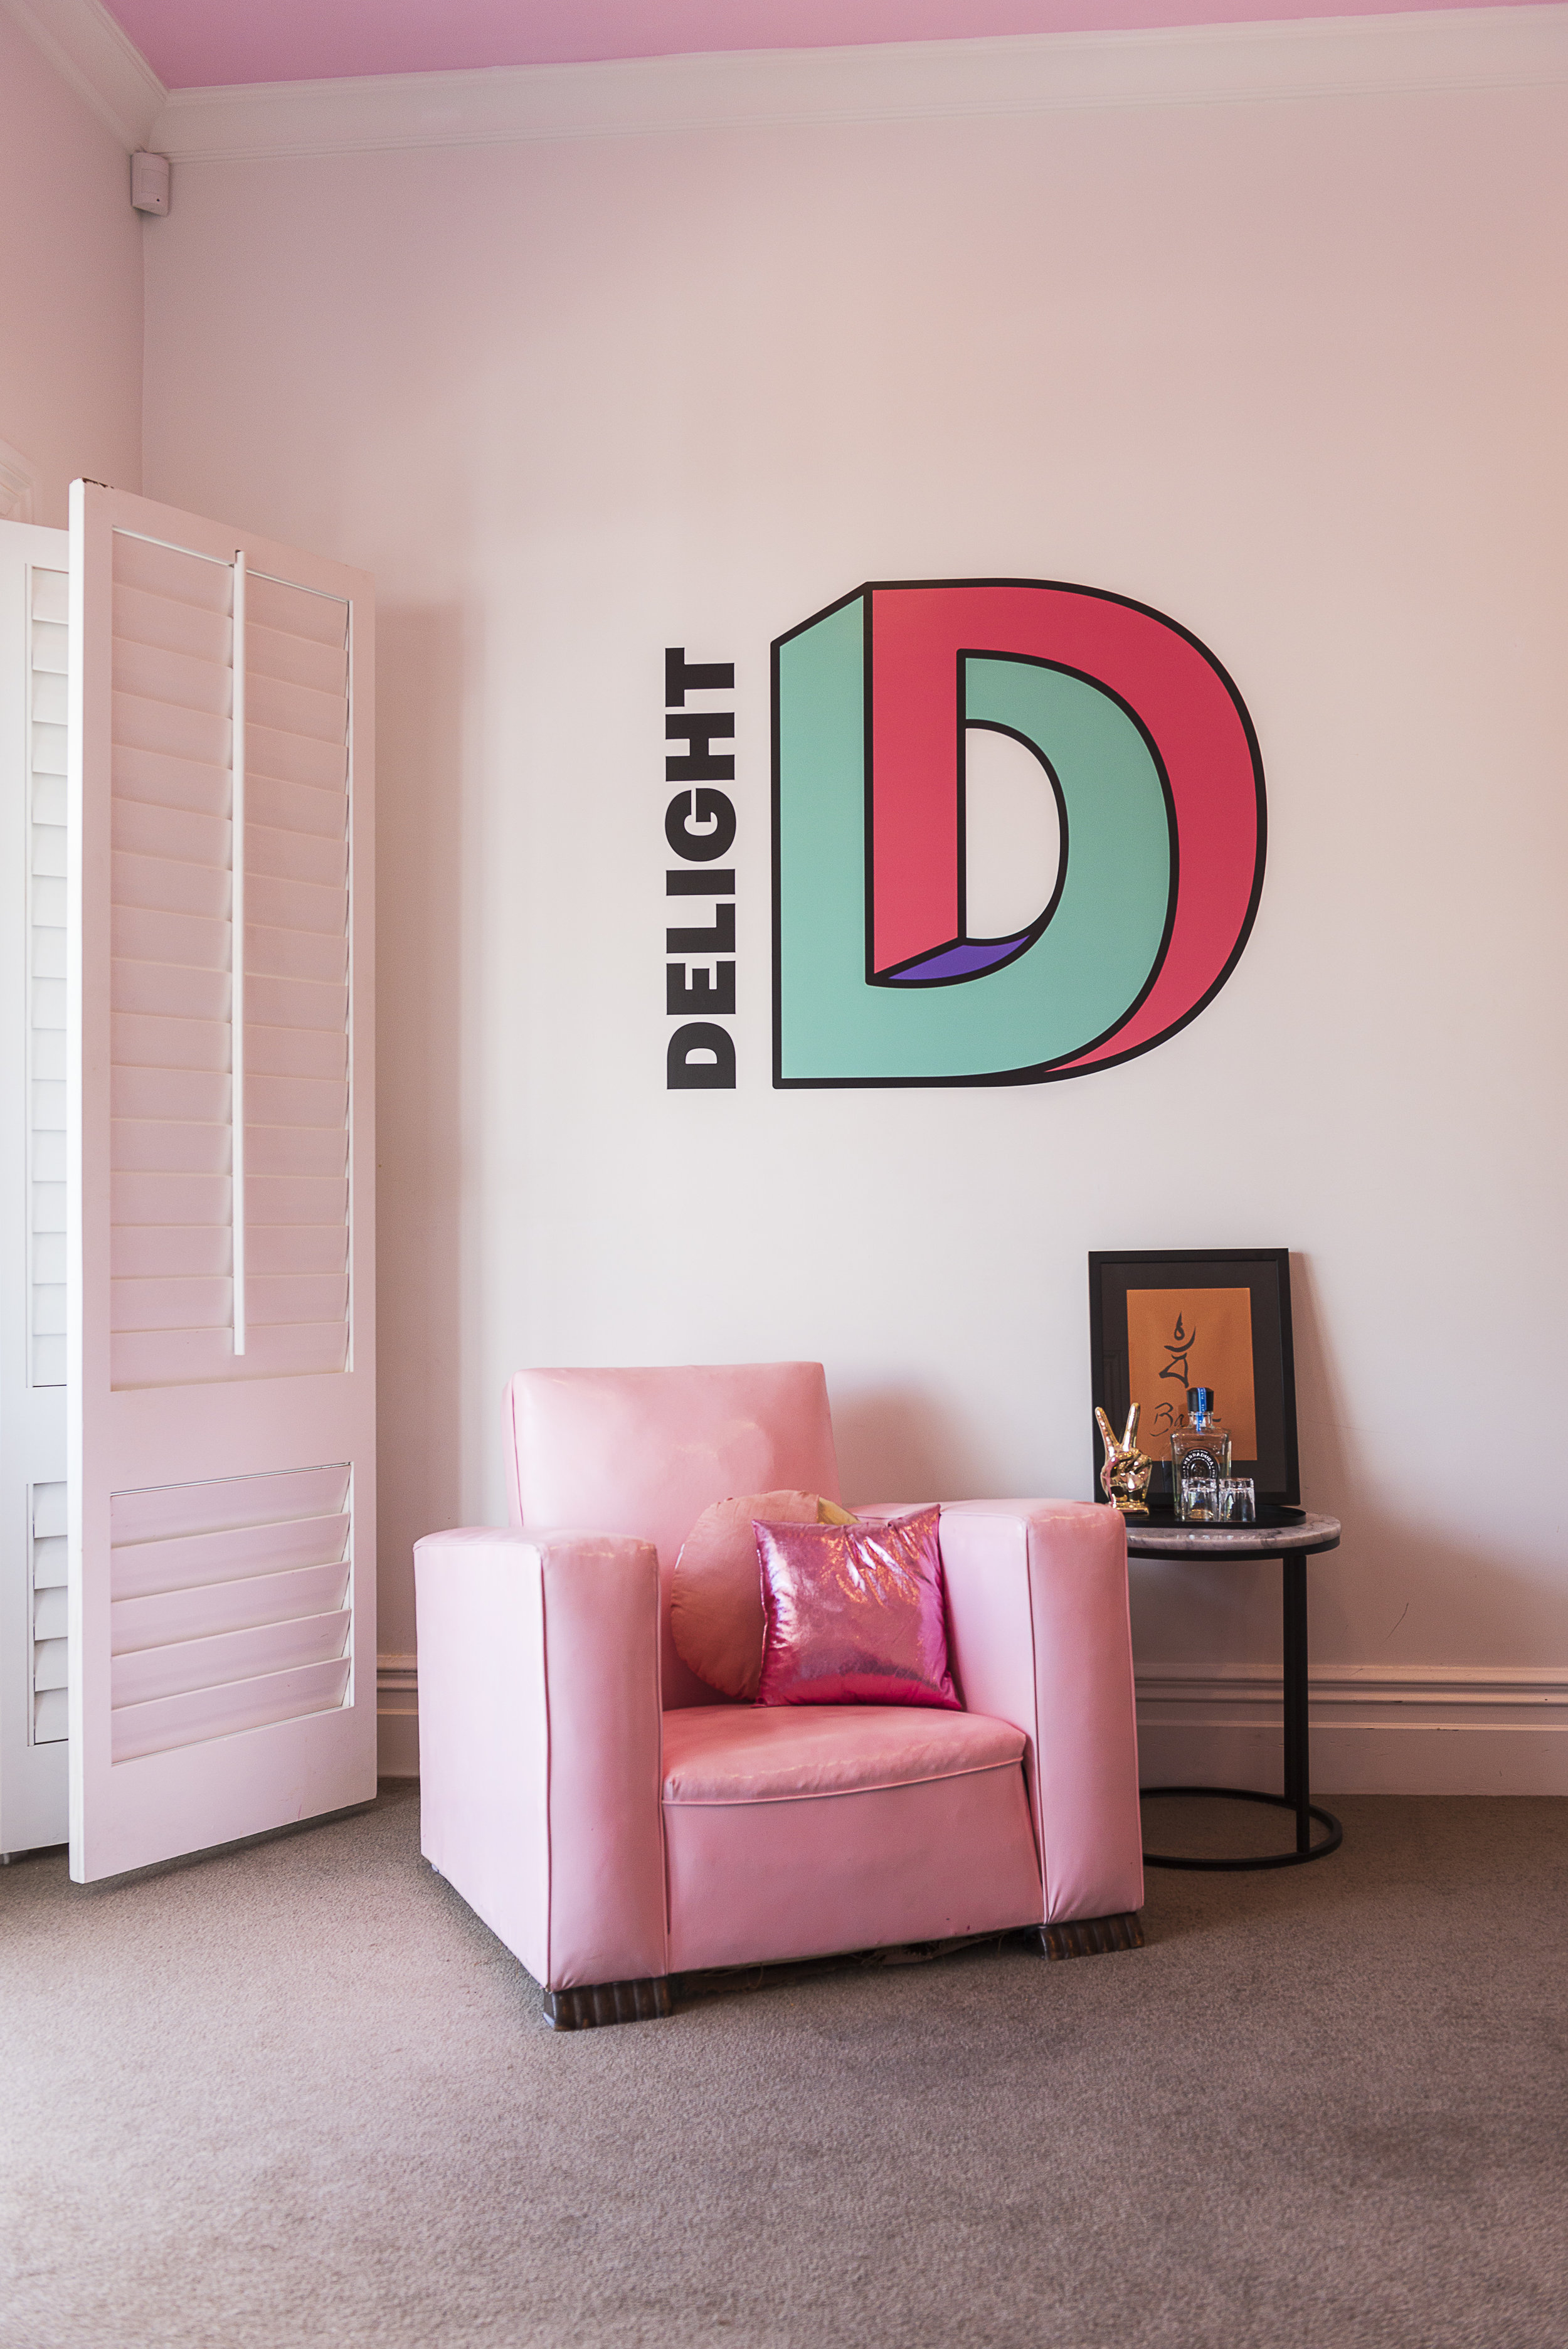 Delight's new logo provided the colour inspiration and made a fun wall decal in the main office above a custom painted Art Deco arm chair.  Photograph by Helen Bankers